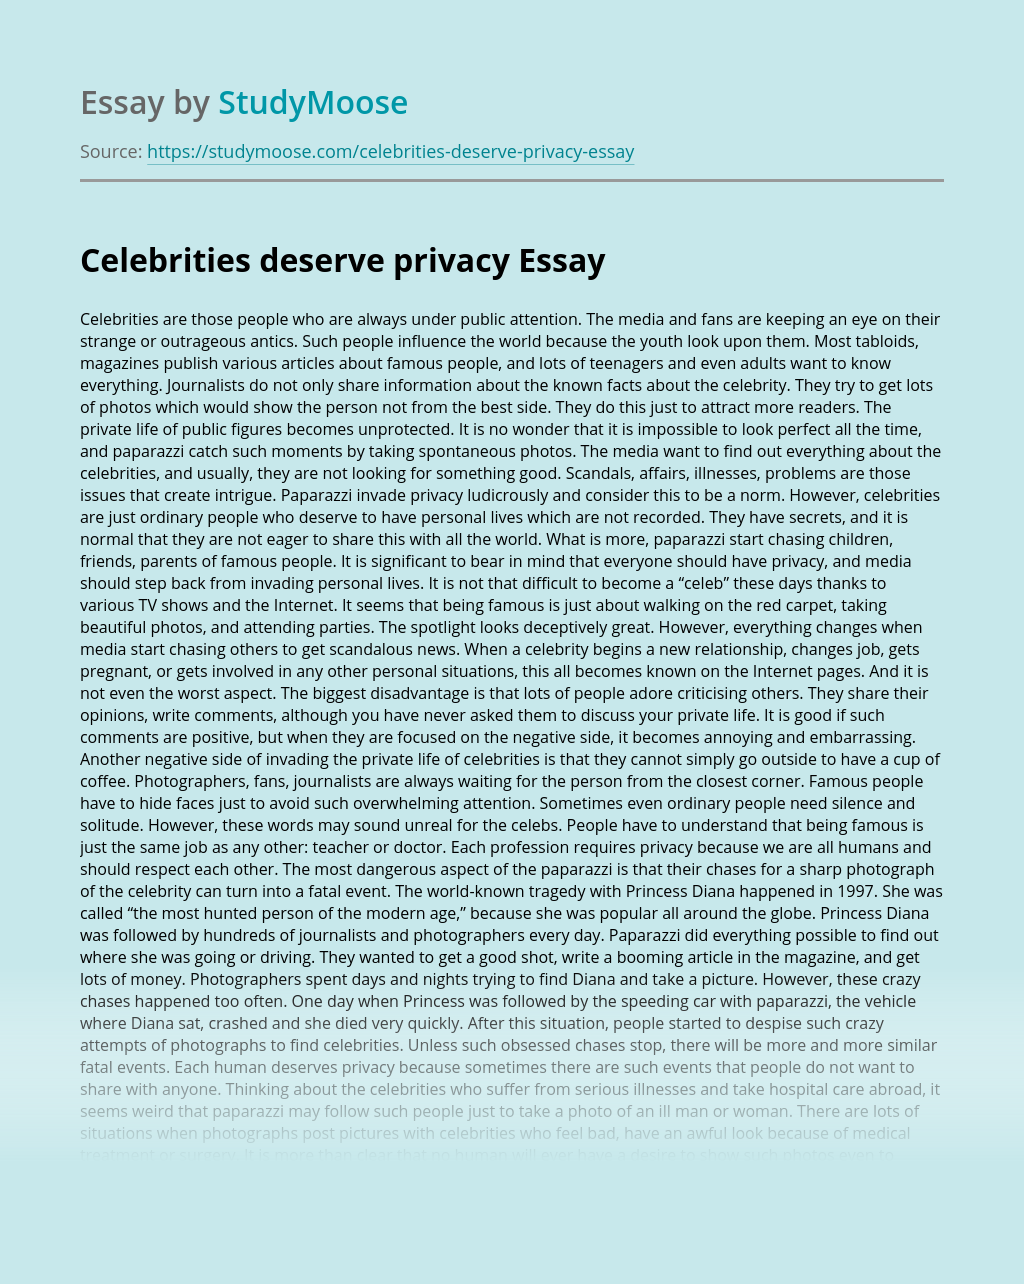 Celebrities deserve privacy